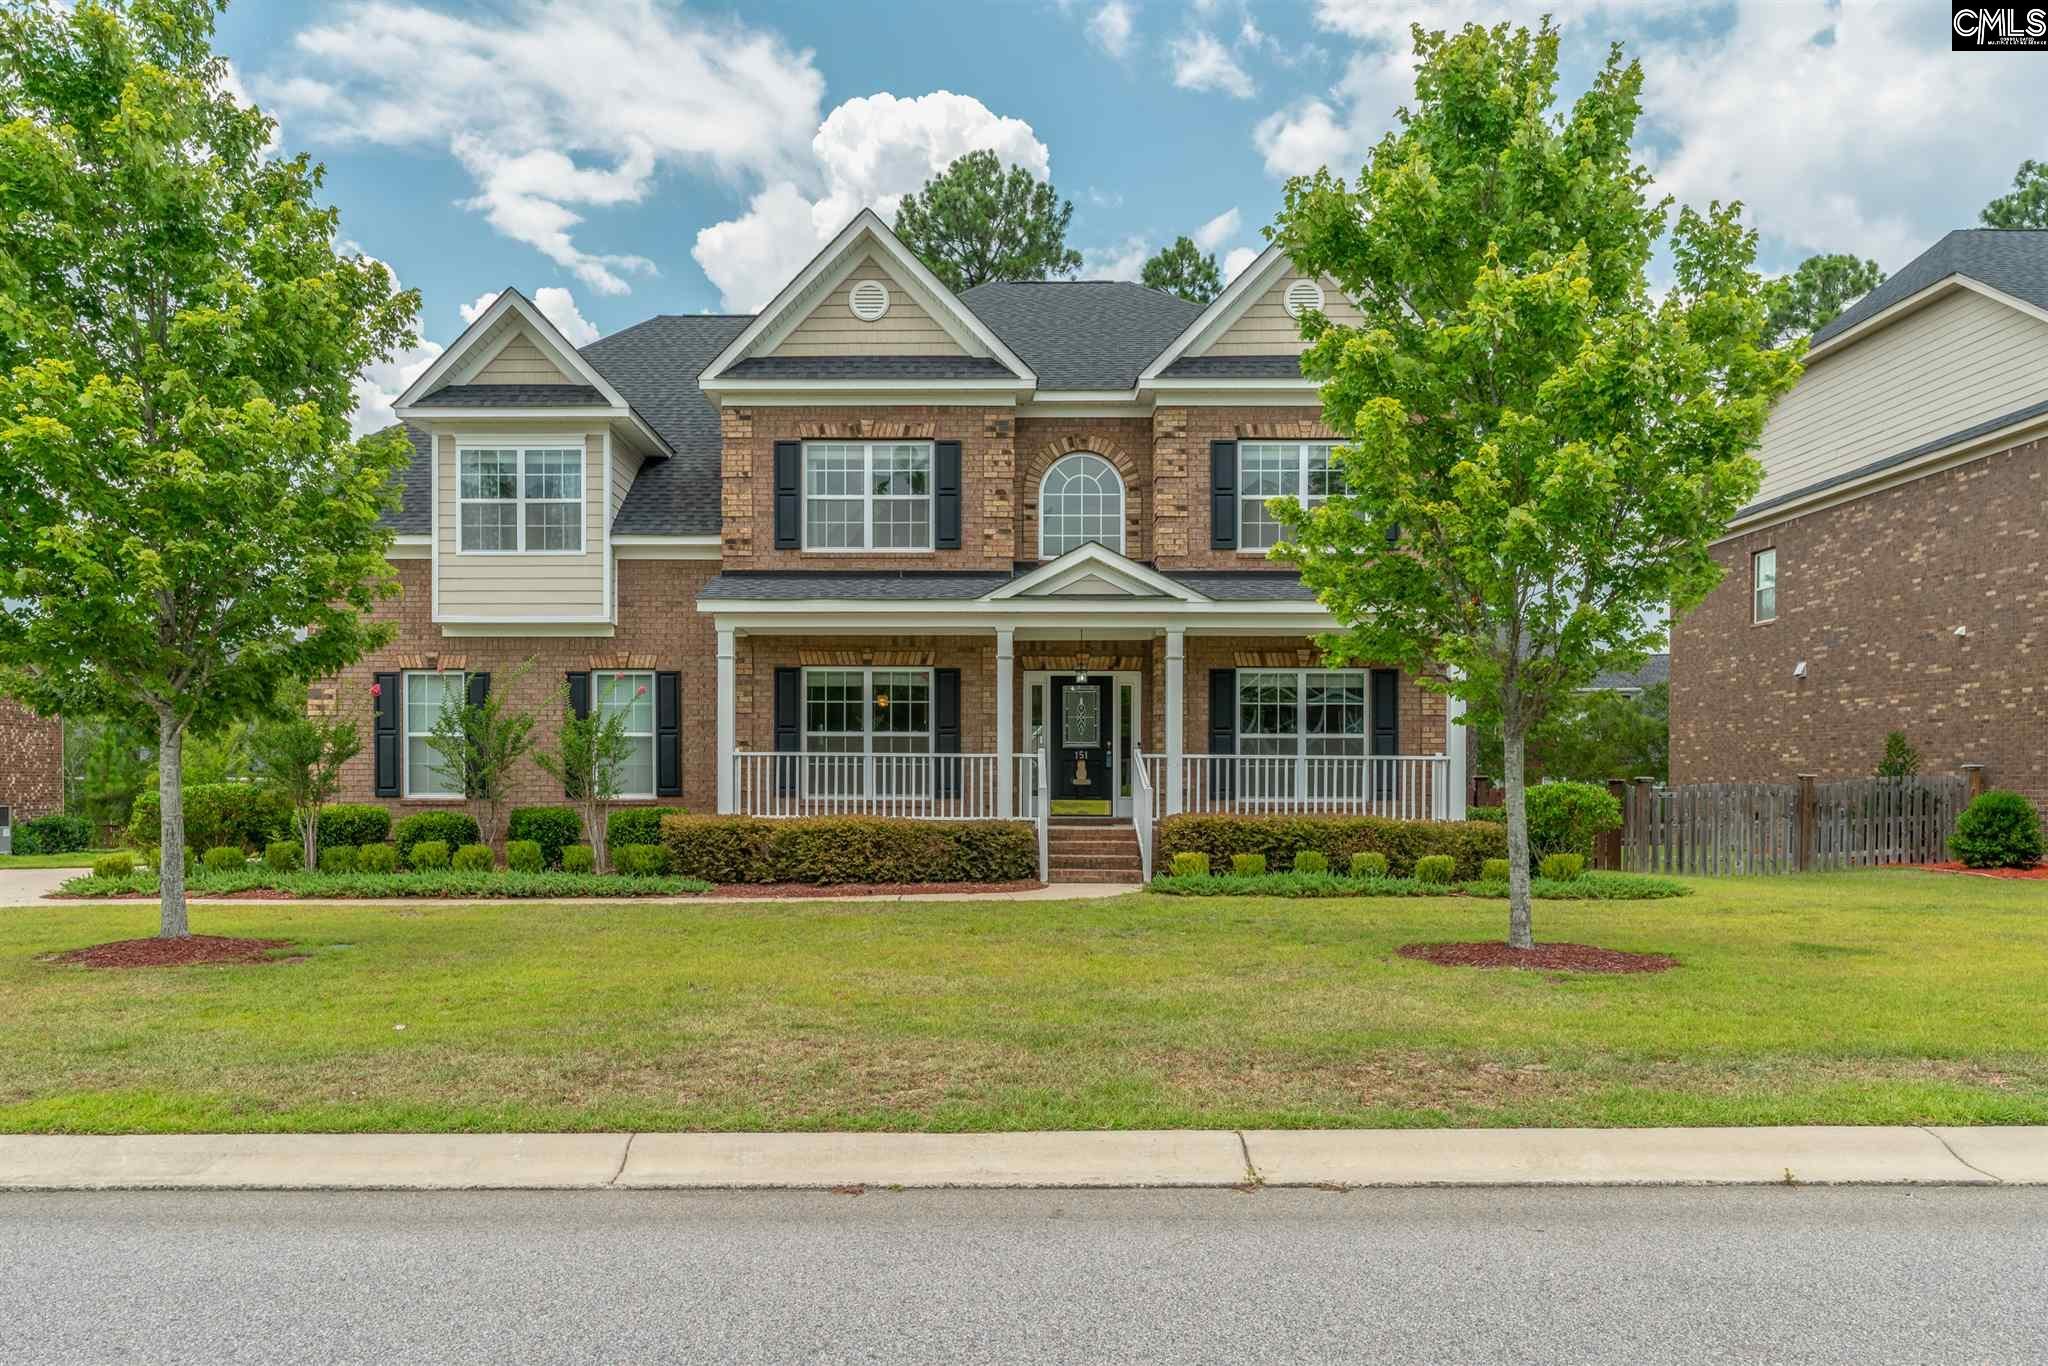 151 Abbeywalk Columbia, SC 29229